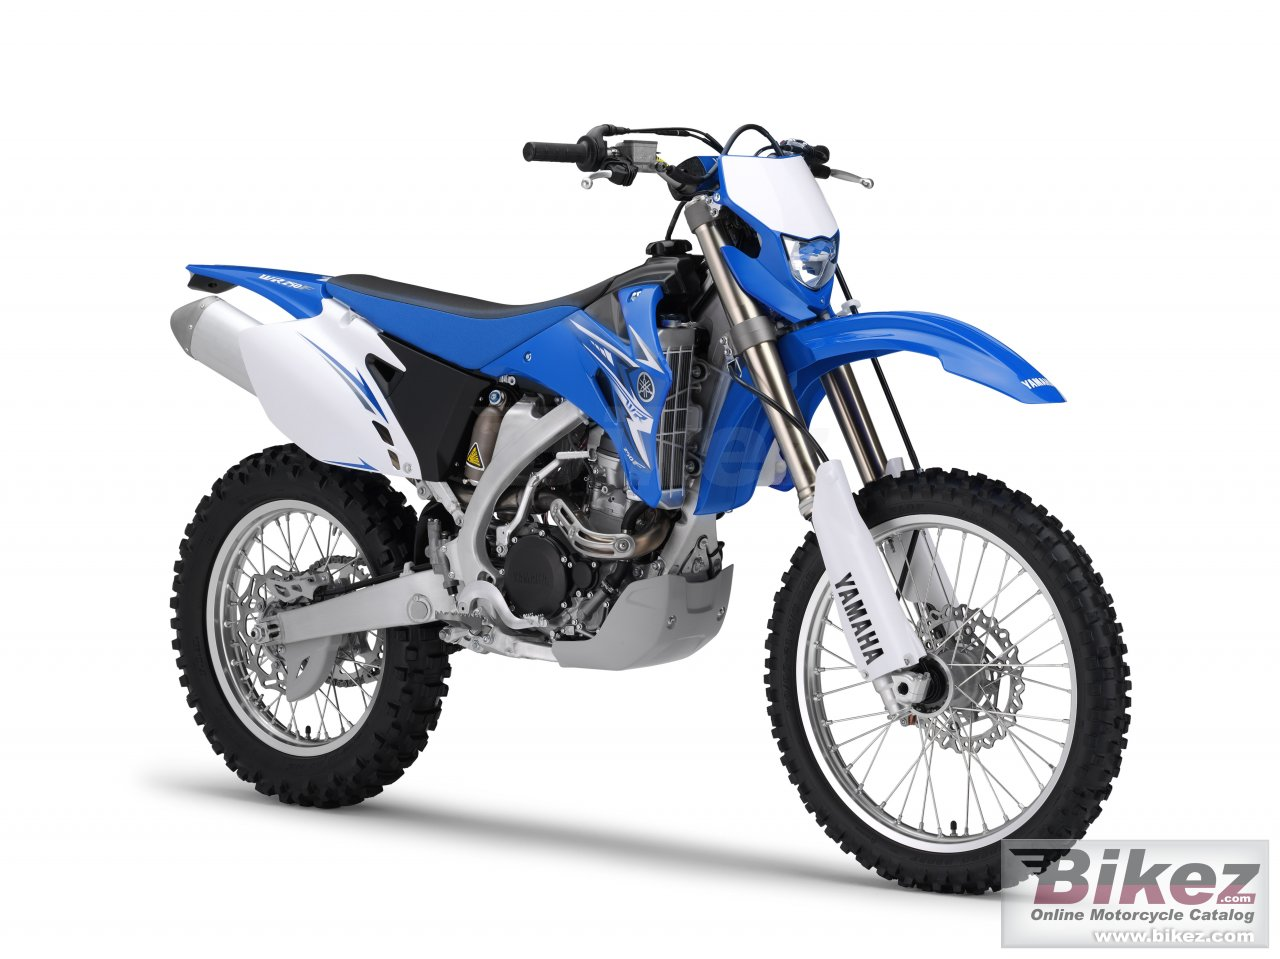 Big Yamaha wr250f picture and wallpaper from Bikez.com